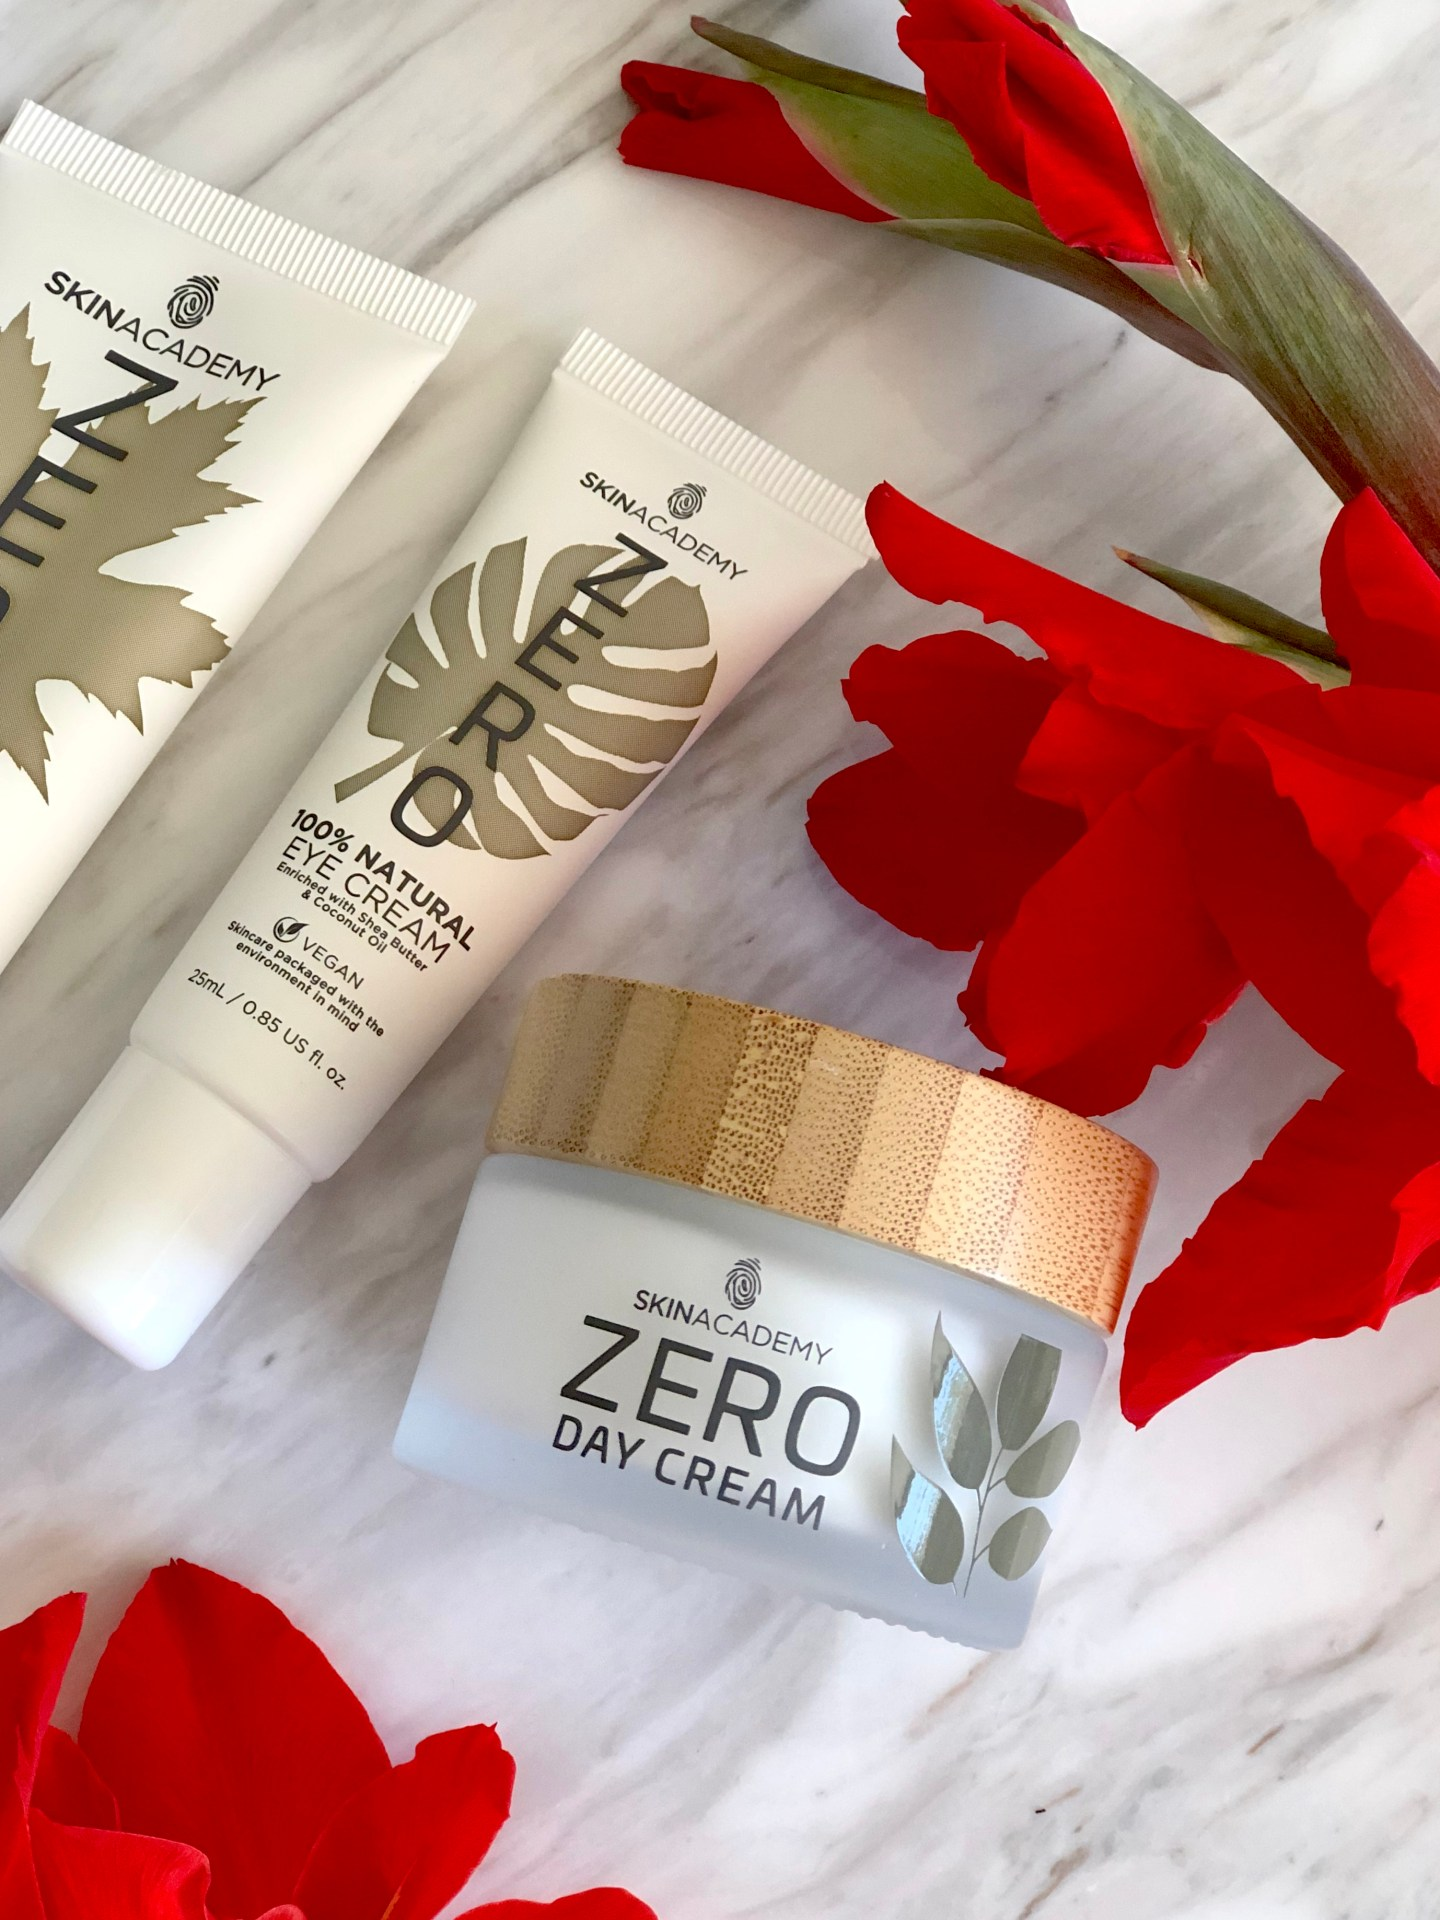 Zero Face cream packaging, The zero face cream comes in a glass jar with a bamboo lid. The lid of the jar has a removable plastic insert which can also be recycled.